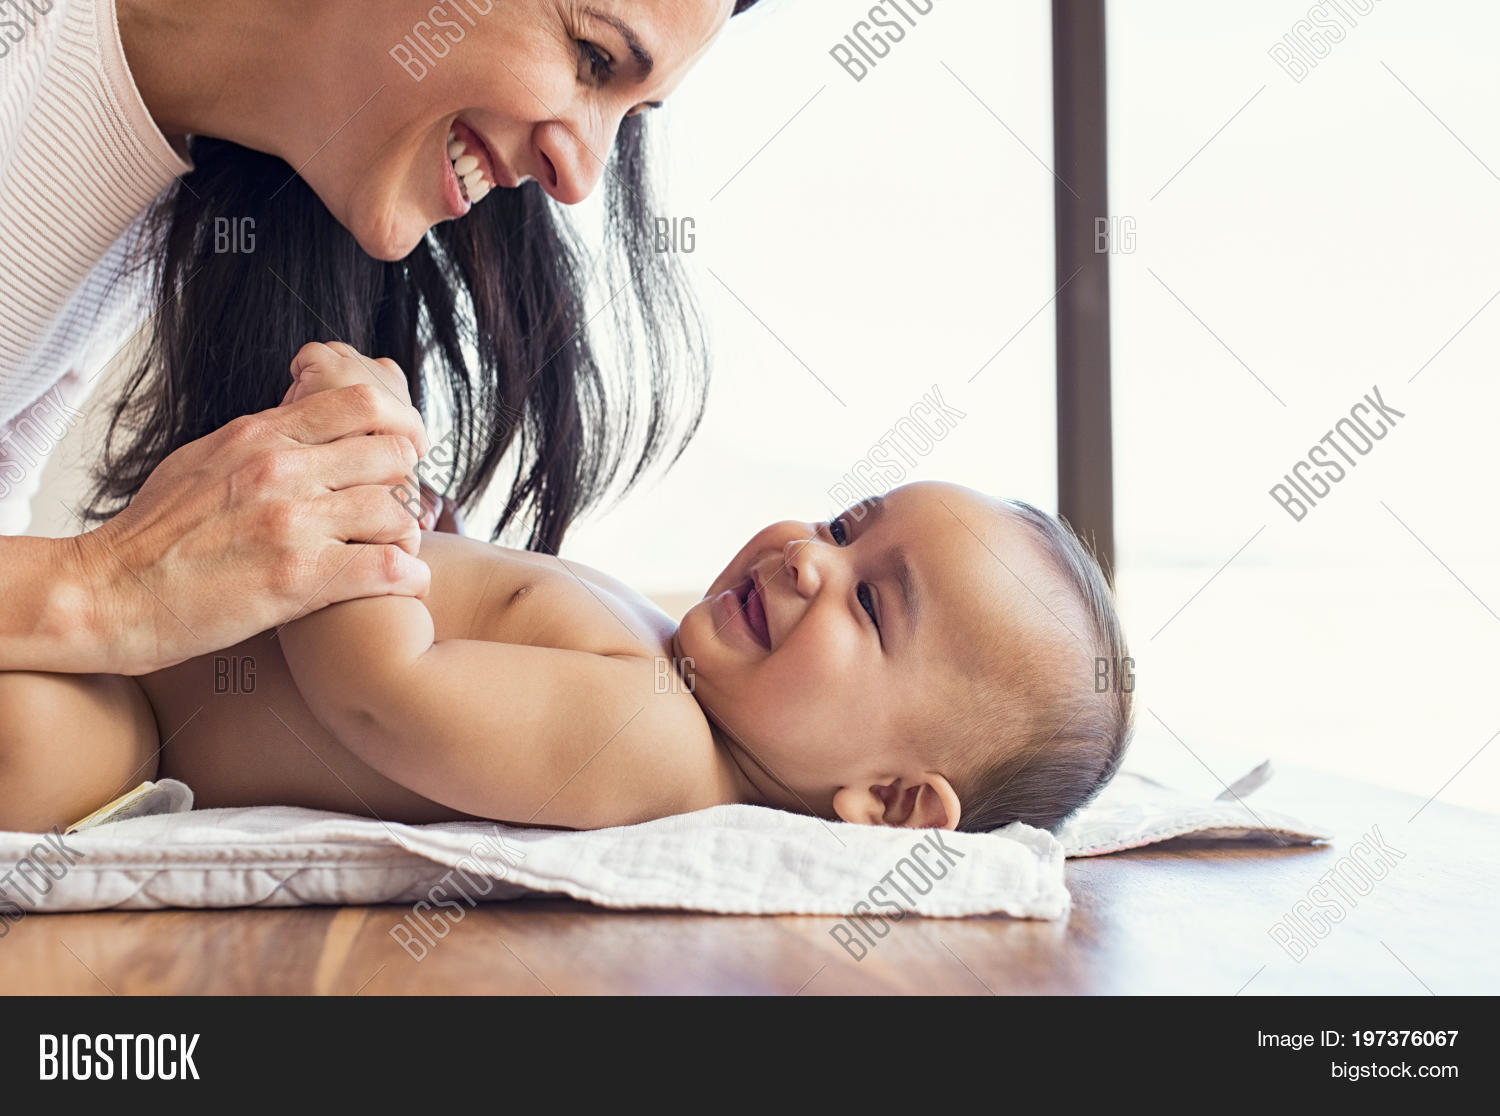 adorable,baby,baby bath,bath,care,change,cheerful,child,closeup,cute,cute boy,diaper,diaper change,diaper changing,family,happy,happy baby,hispanic,infant,infant baby,infant care,kid,latin,love,lovely,maternity,mom,mother,mother and baby,mother and son,nappy,newborn,pamper,parent,people,play,smile,smiling baby,son,table,tickle,toddler,toddler boy,woman,young